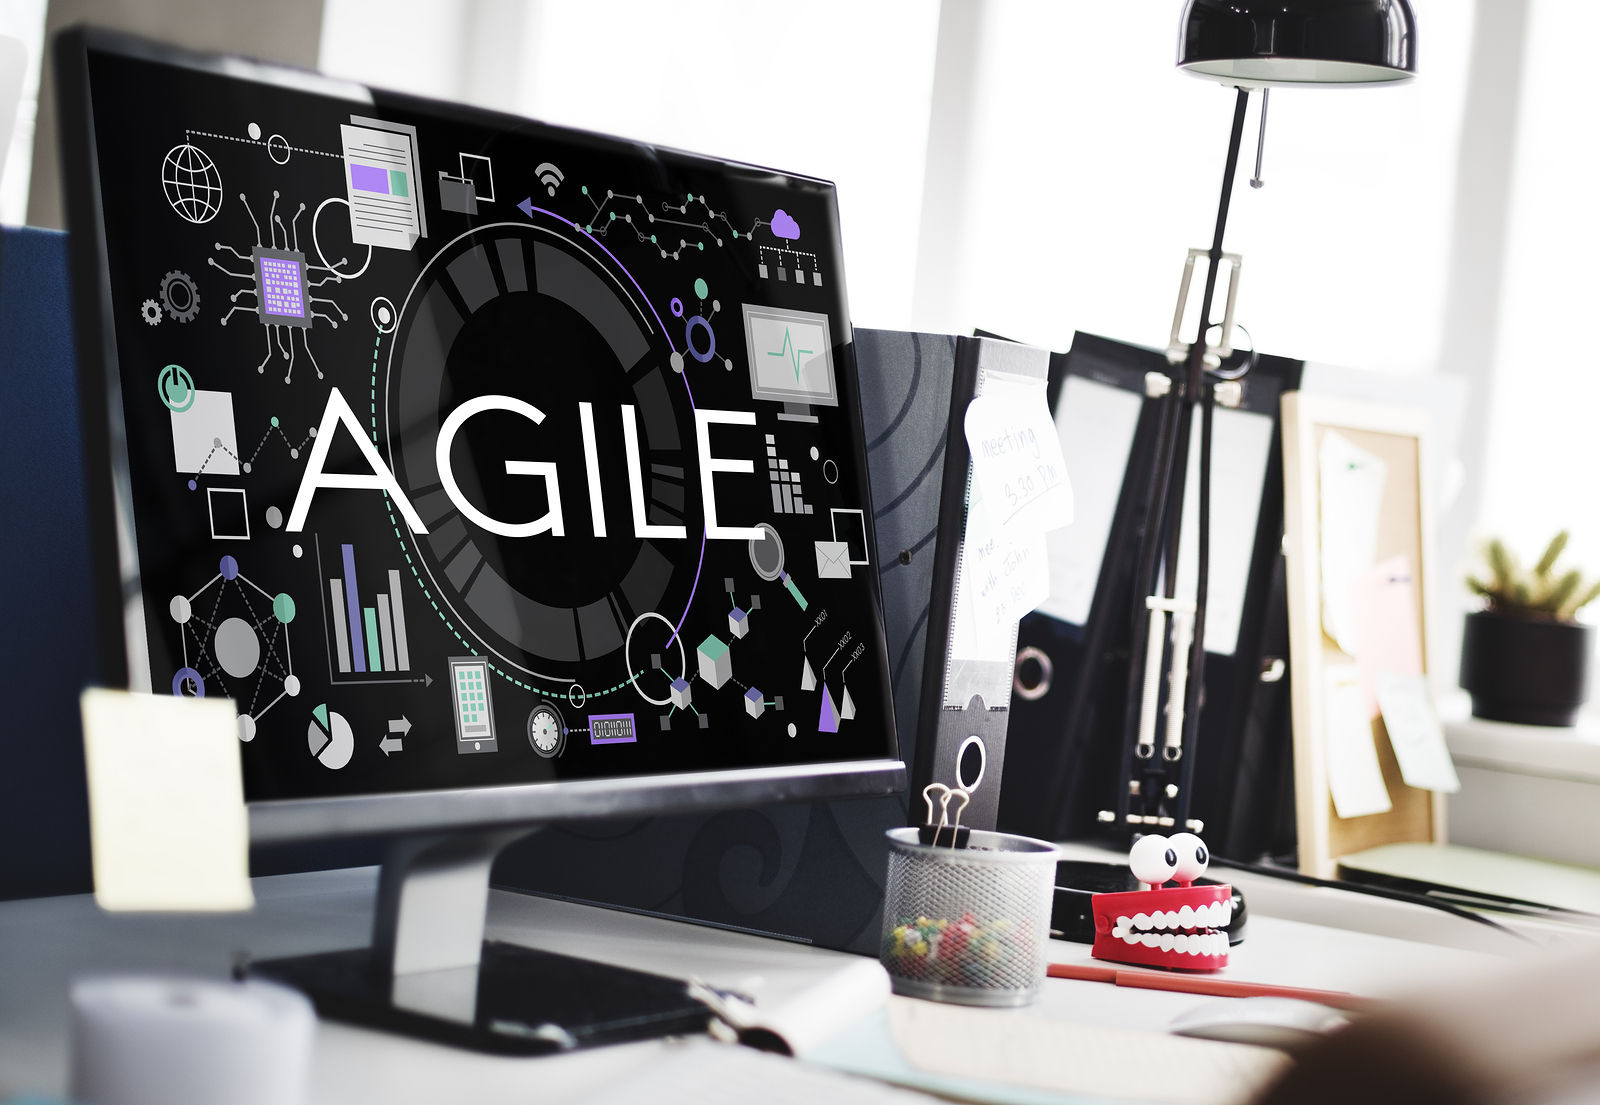 The concept of agility, nimble, quick and fast with agile